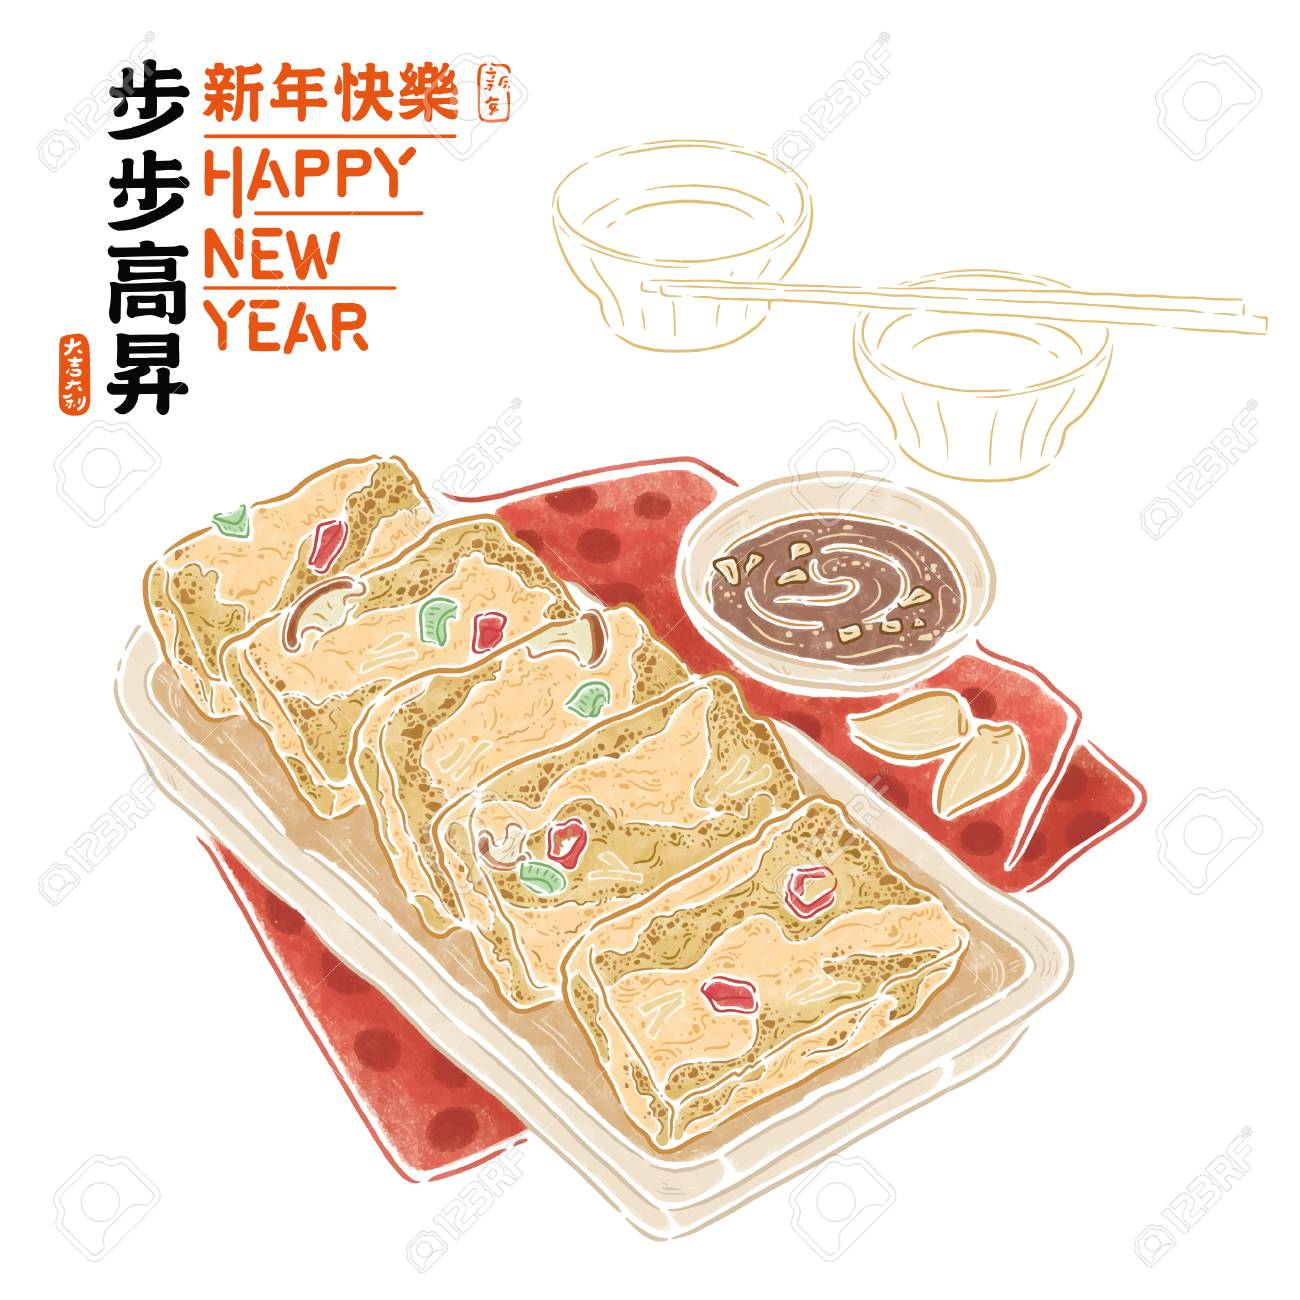 chinese new year traditional dinner dishes chinese explained royalty free cliparts vectors and stock illustration image 93844902 chinese new year traditional dinner dishes chinese explained